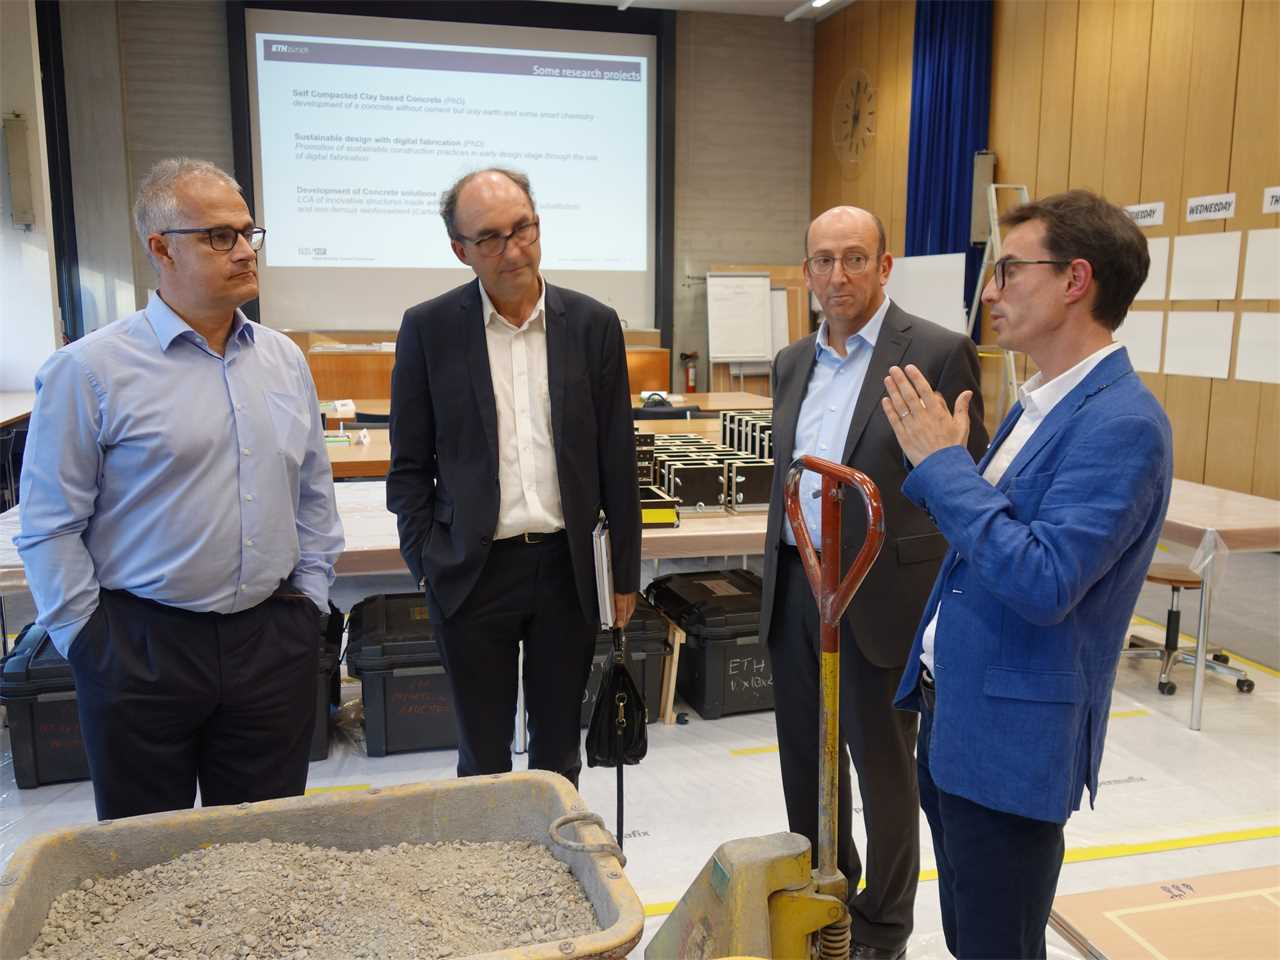 Knowledge exchange between researchers at LCR Lyon and ETH Zurich